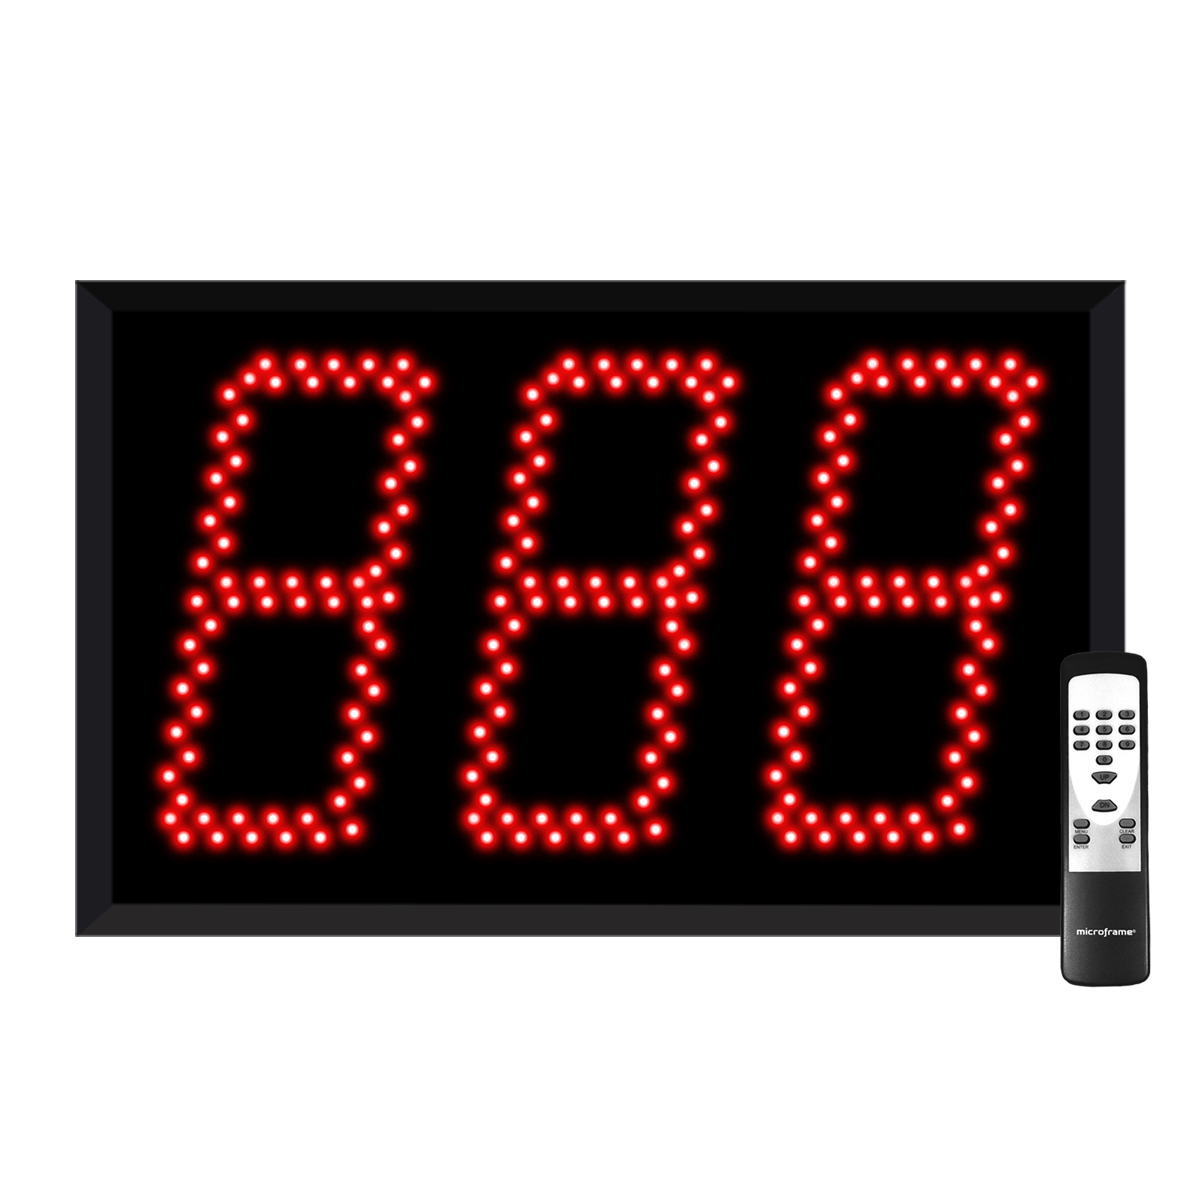 Jumbo 3-Digit Pitch Count Display